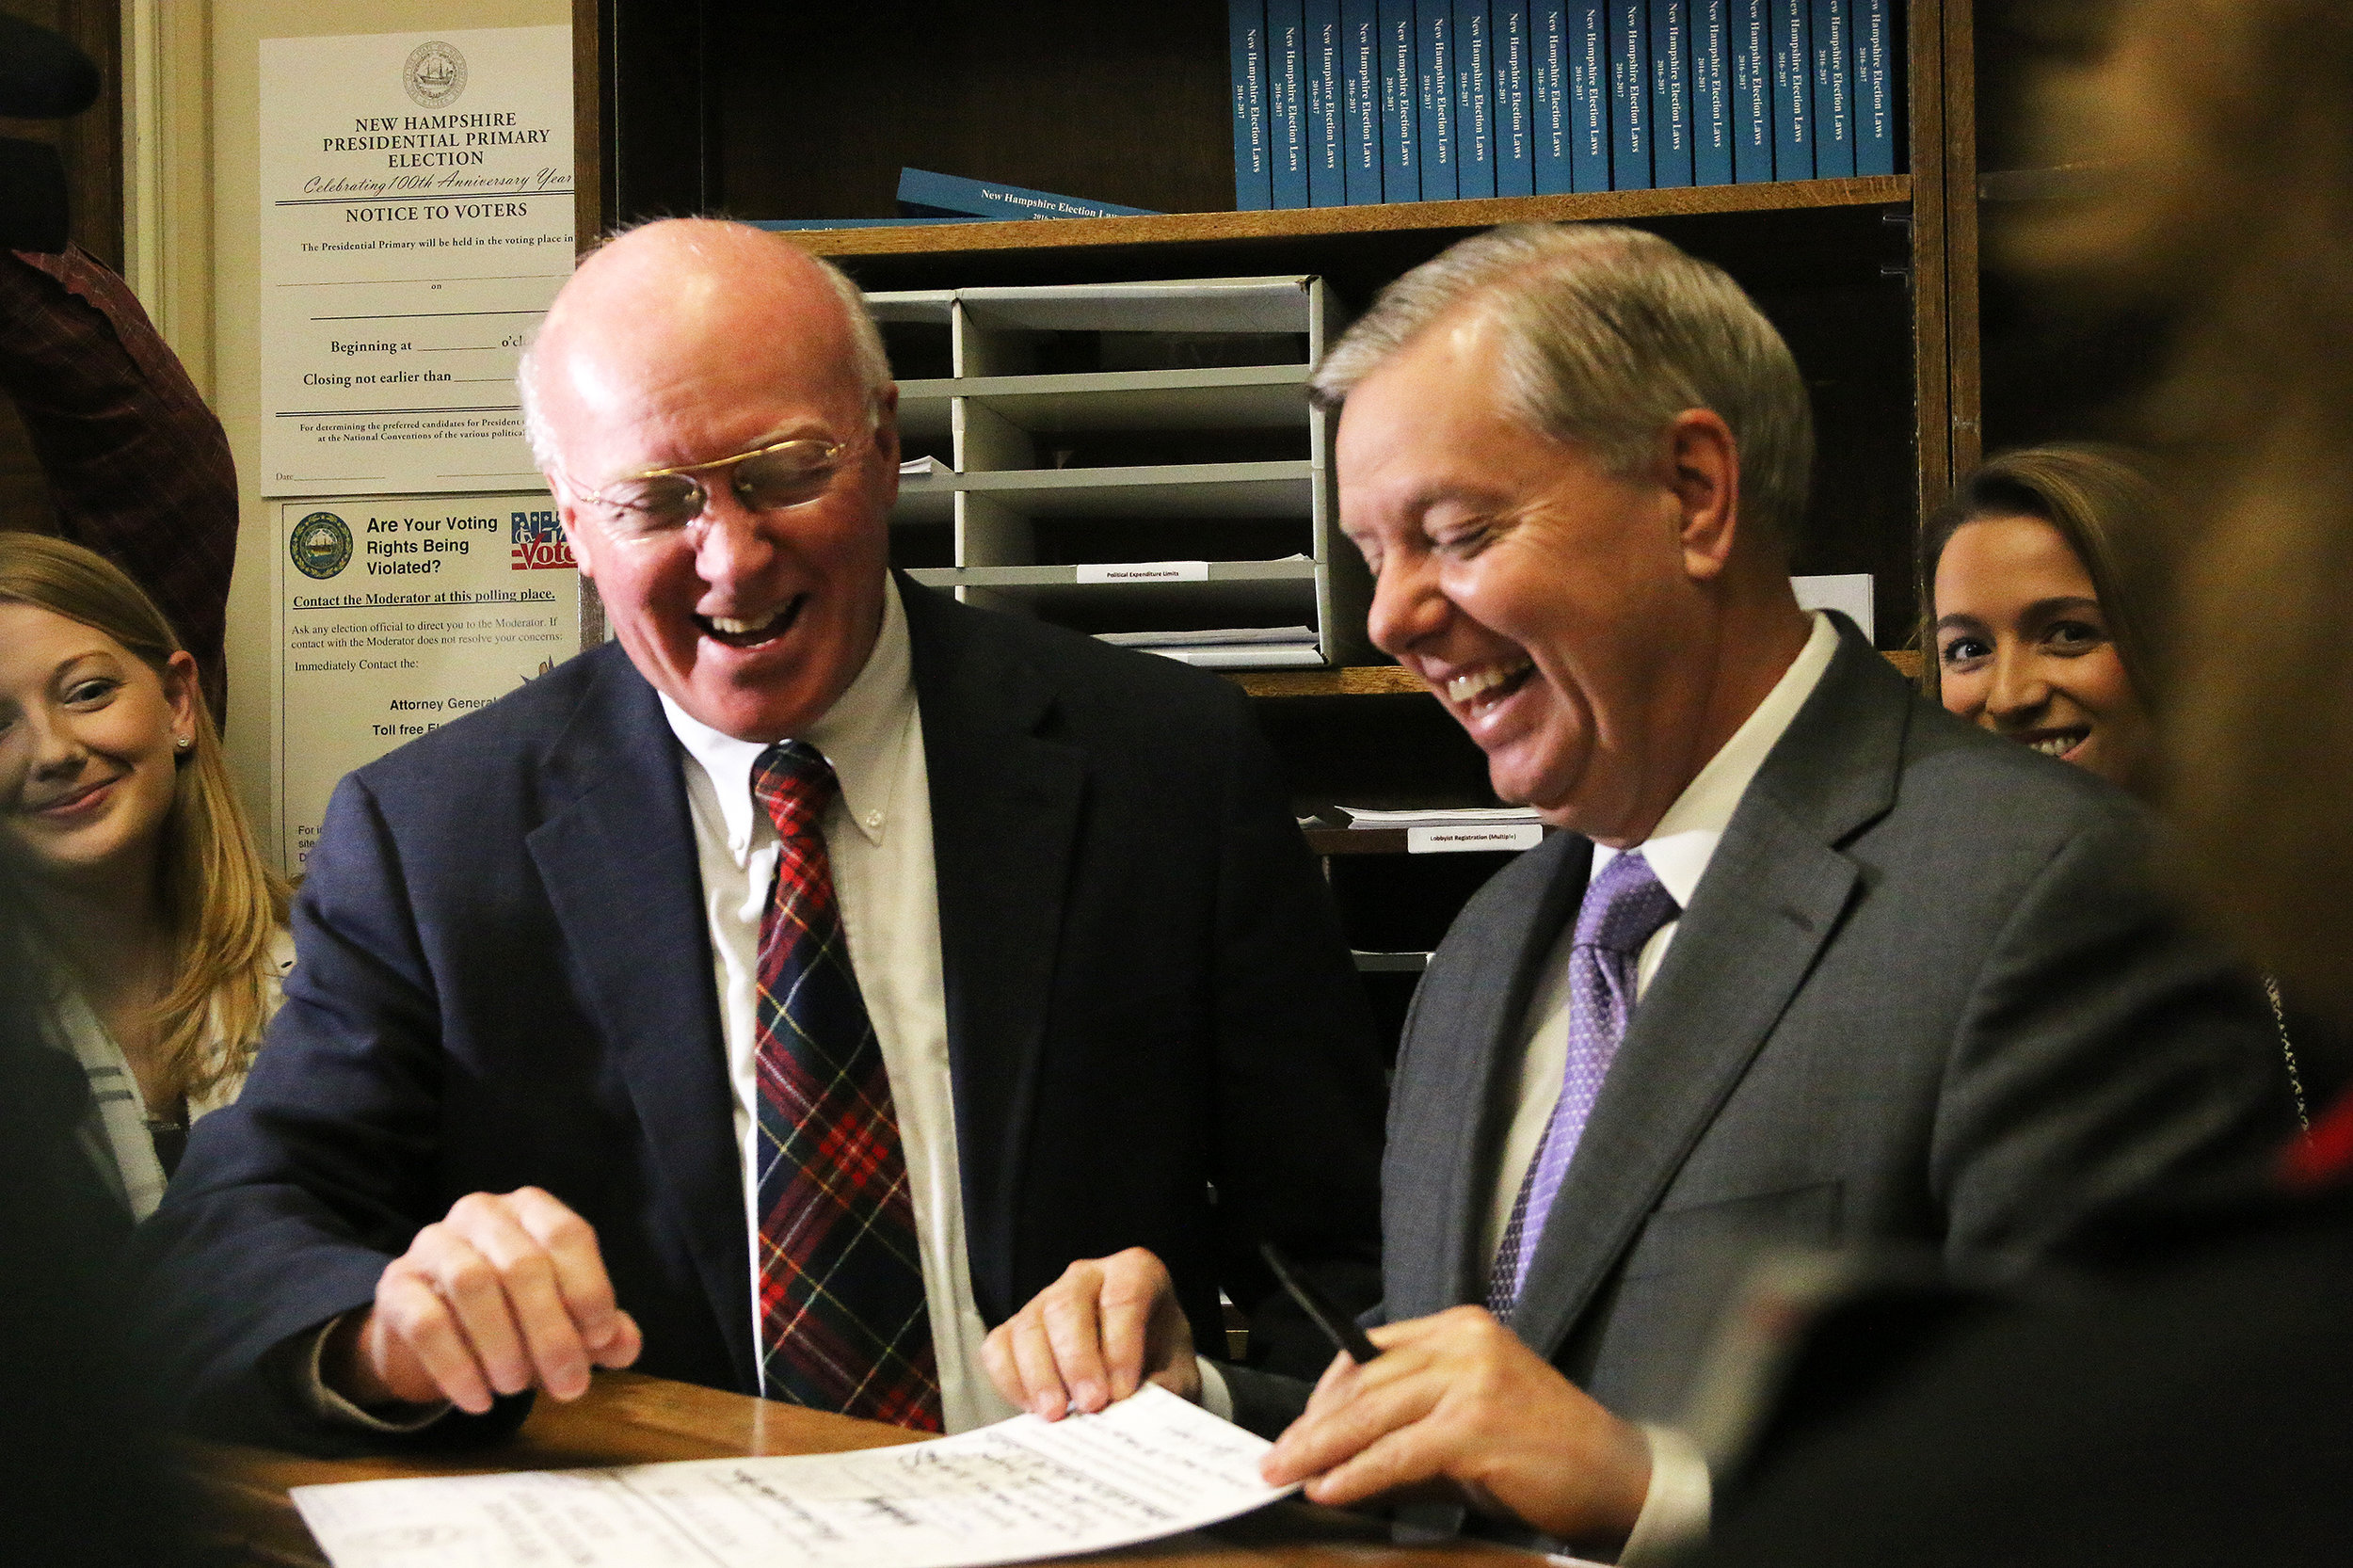 South Carolina Sen. Lindsey Graham files for the 2016 New Hampshire Primary. Photo by Allegra Boverman.